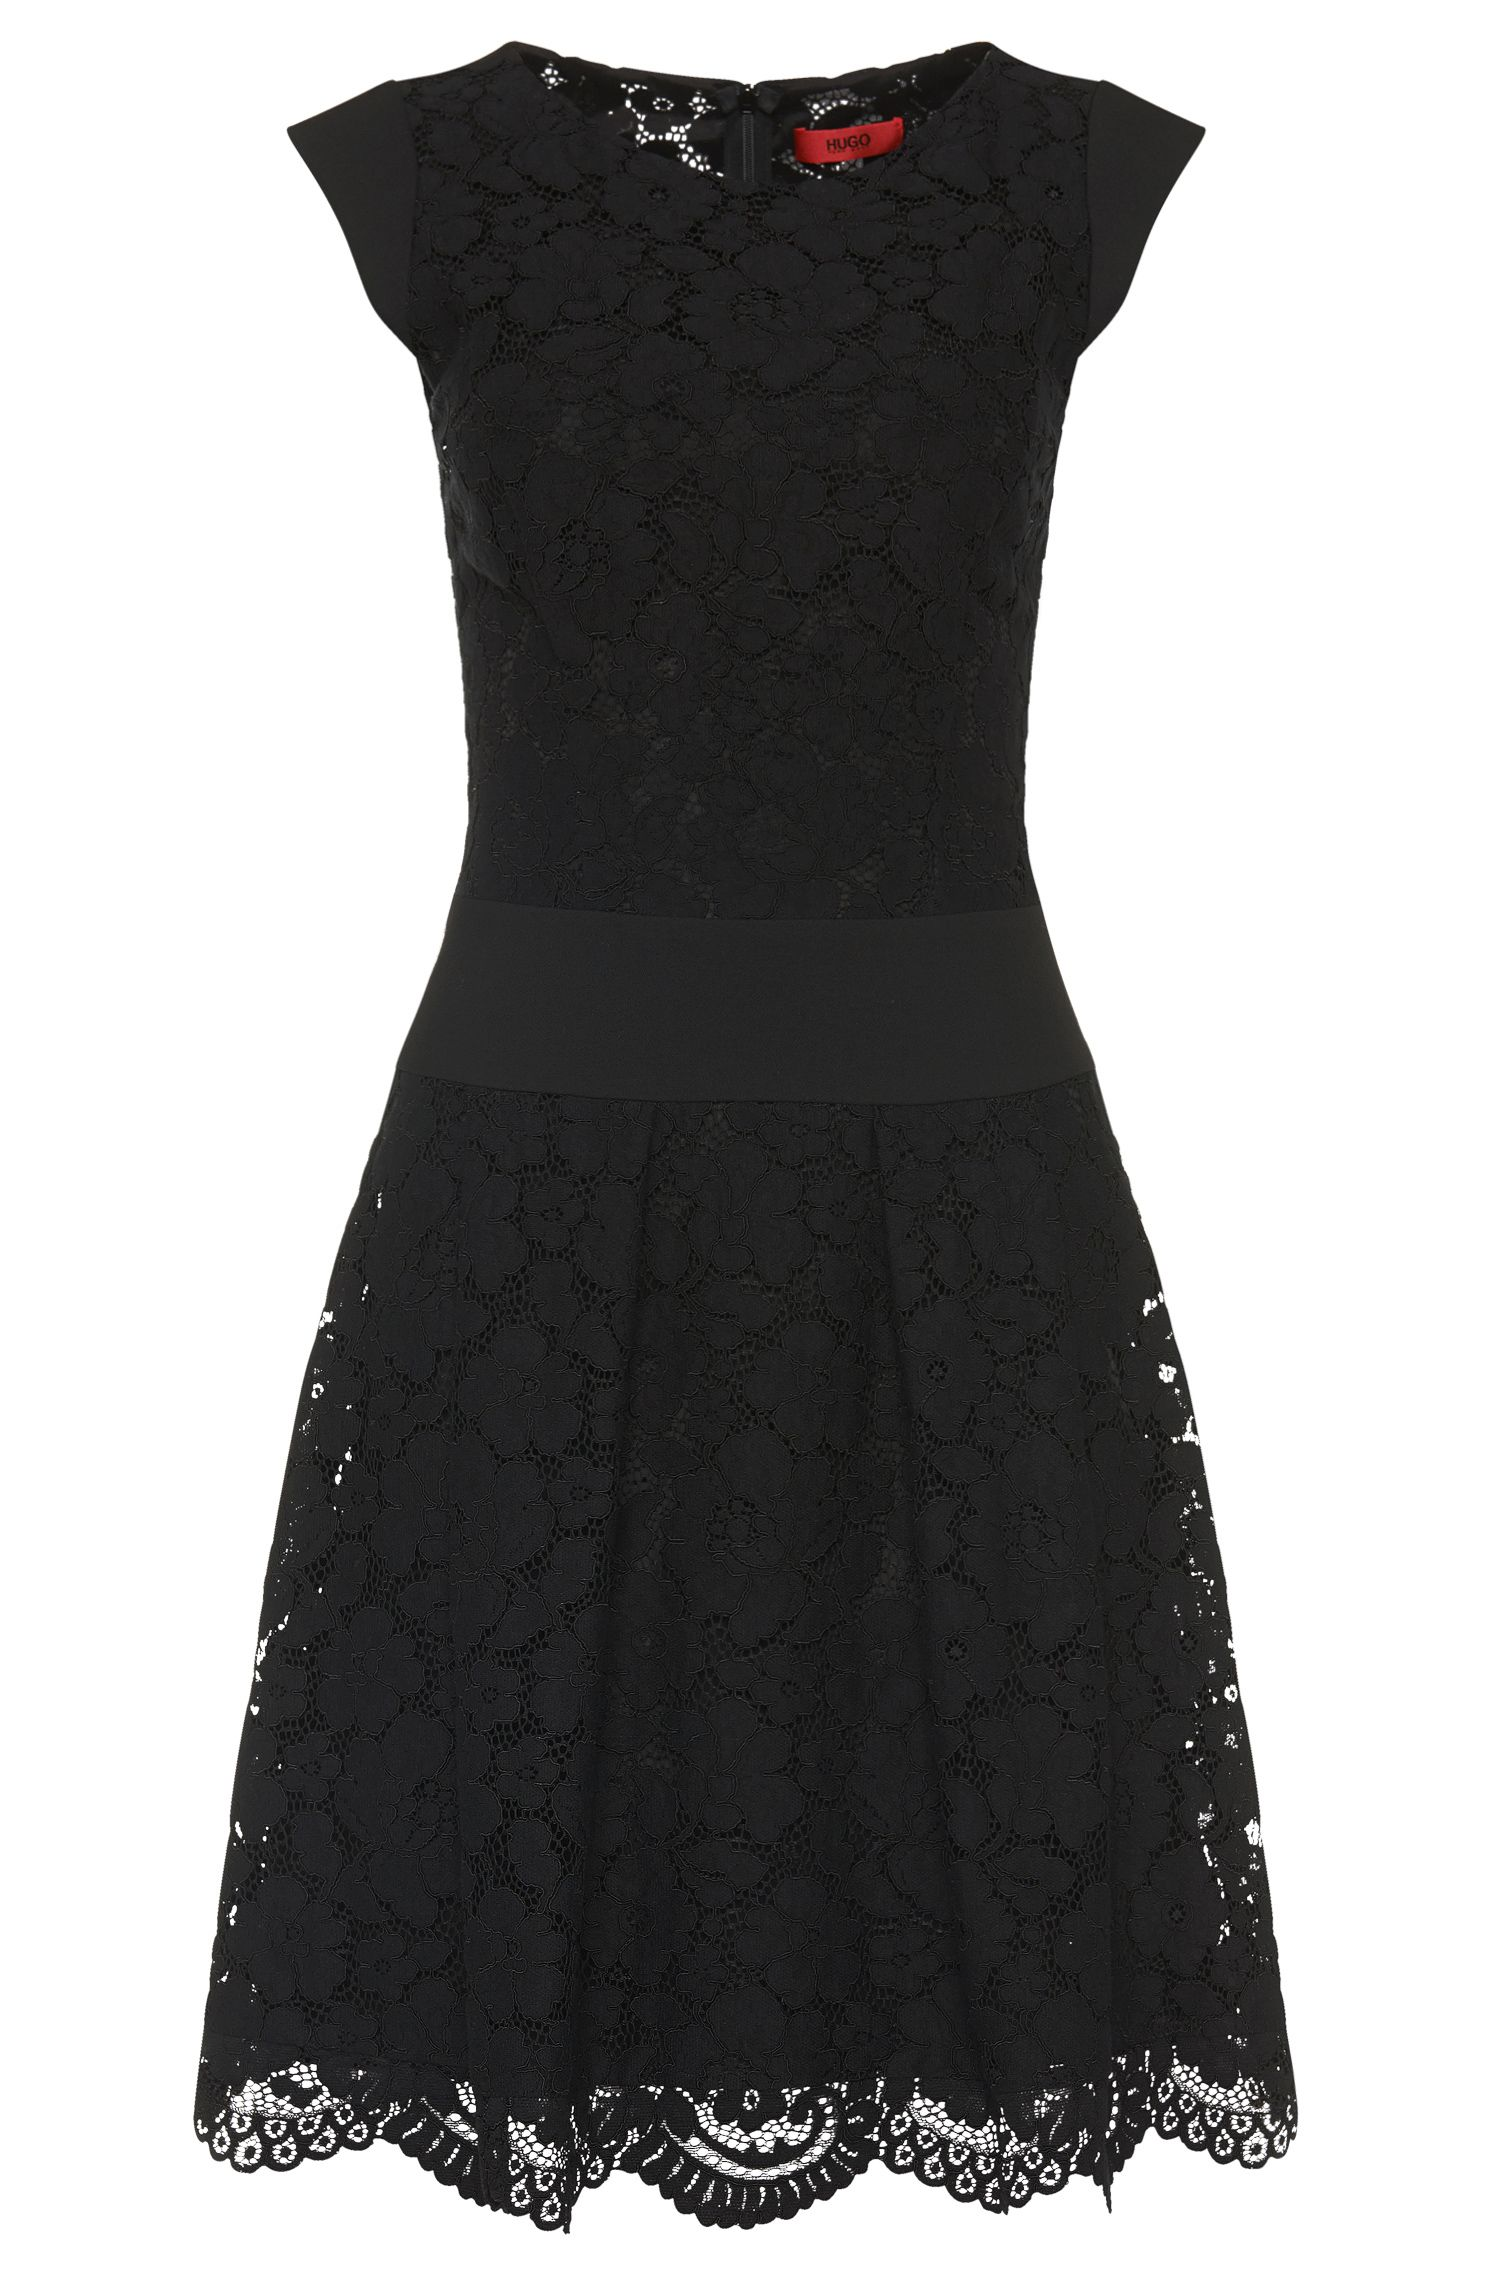 'Kerona' | Cotton Blend A-Line Lace Dress